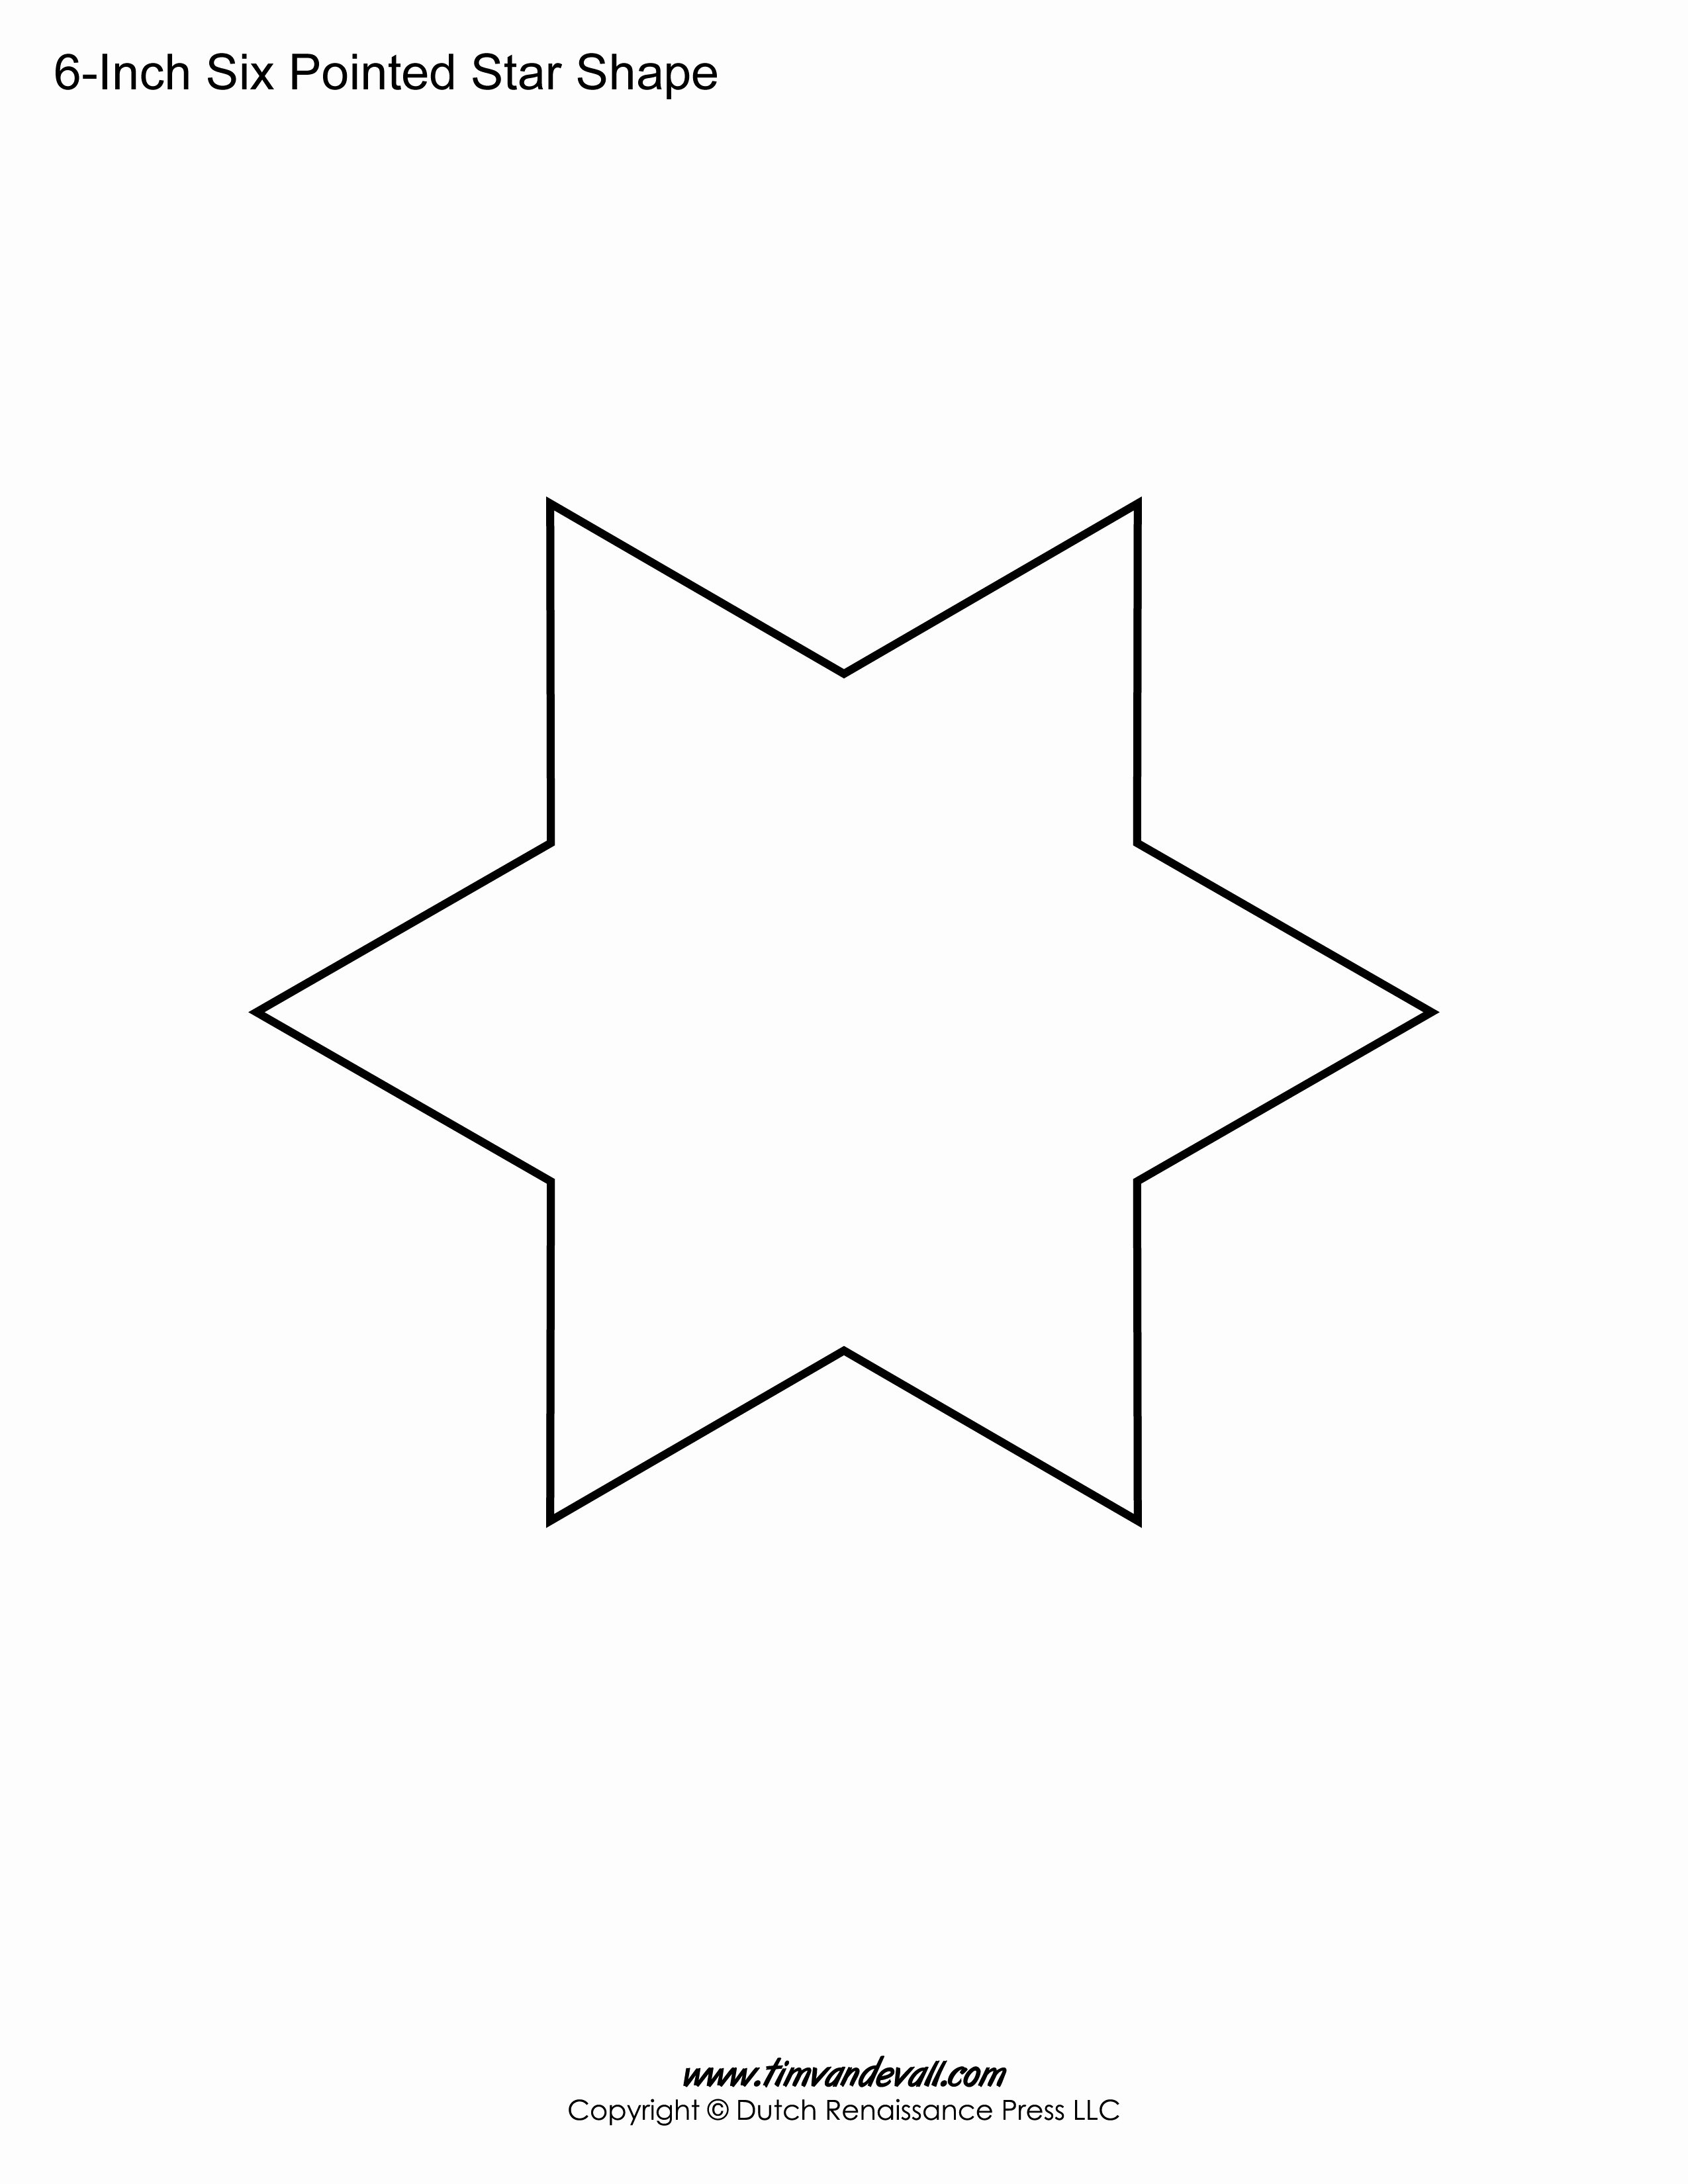 6 Inch Star Unique Printable Six Pointed Star Templates